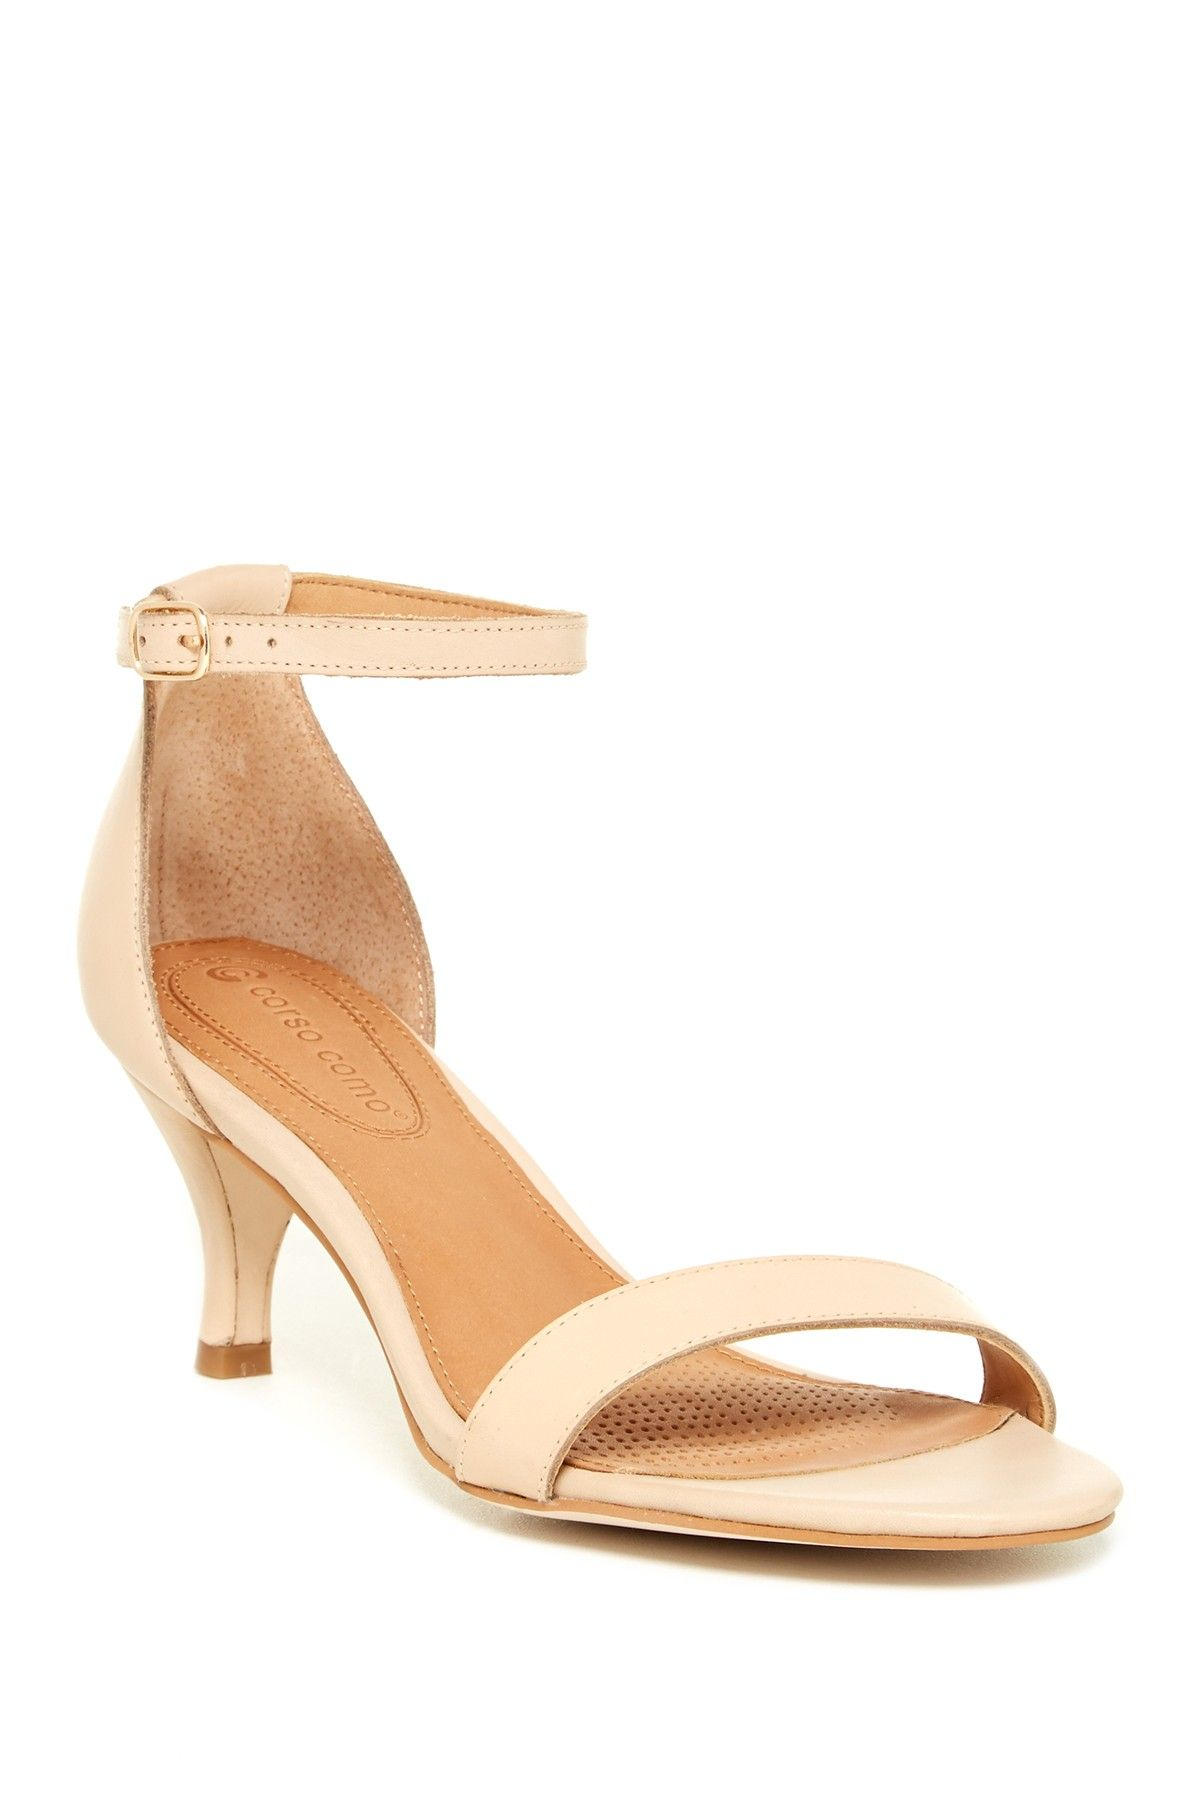 62f1d41bf503 Love these Nude Ankle Strap Low Heel Sandals